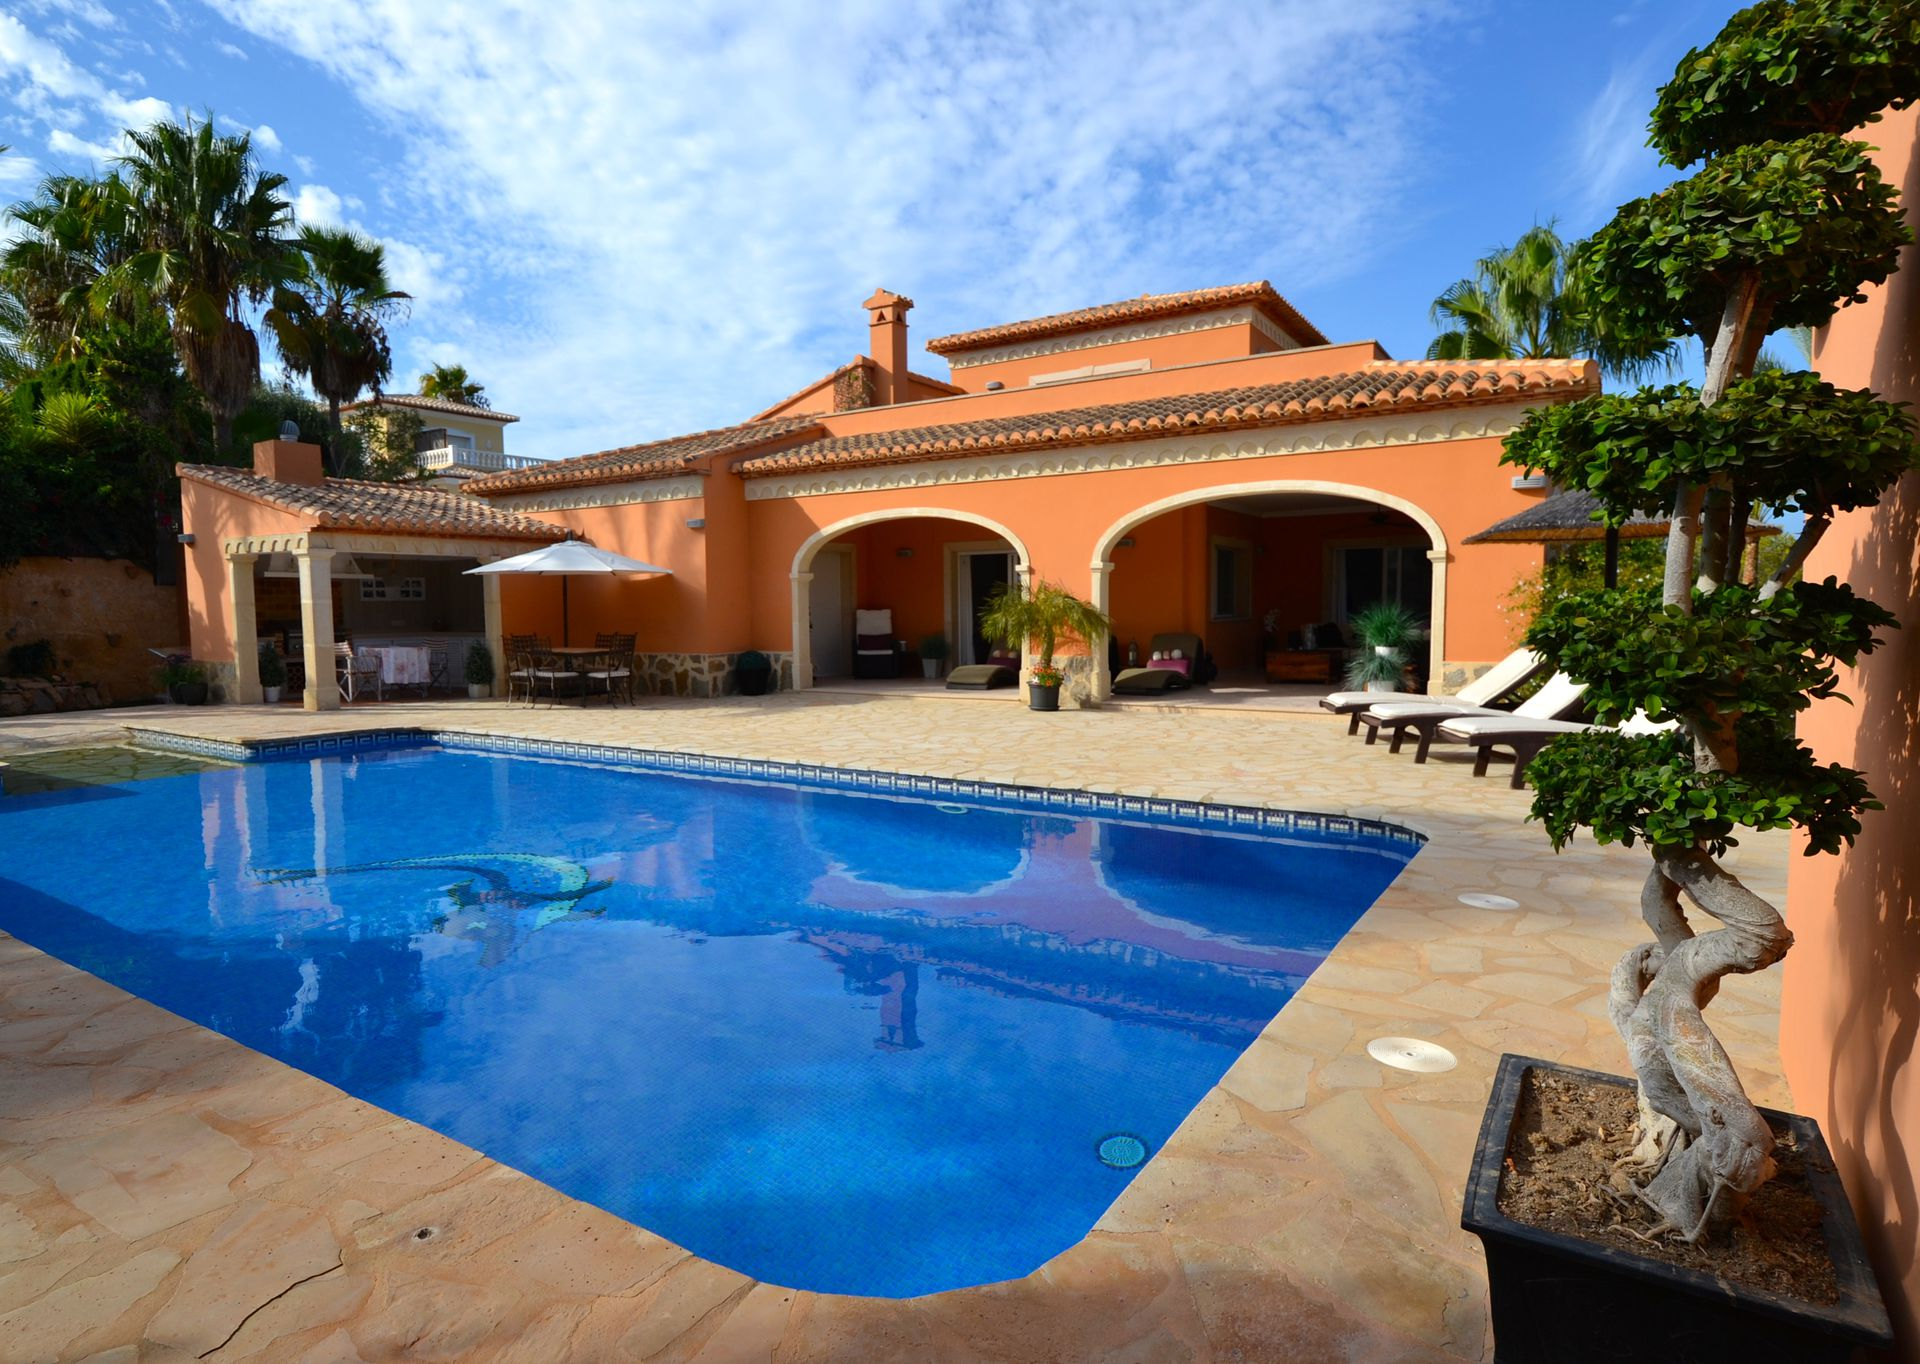 Whirlpool Garten Rattan Lovely Villa With Pool Jacuzzi Home Gym Xabia Javea Spain